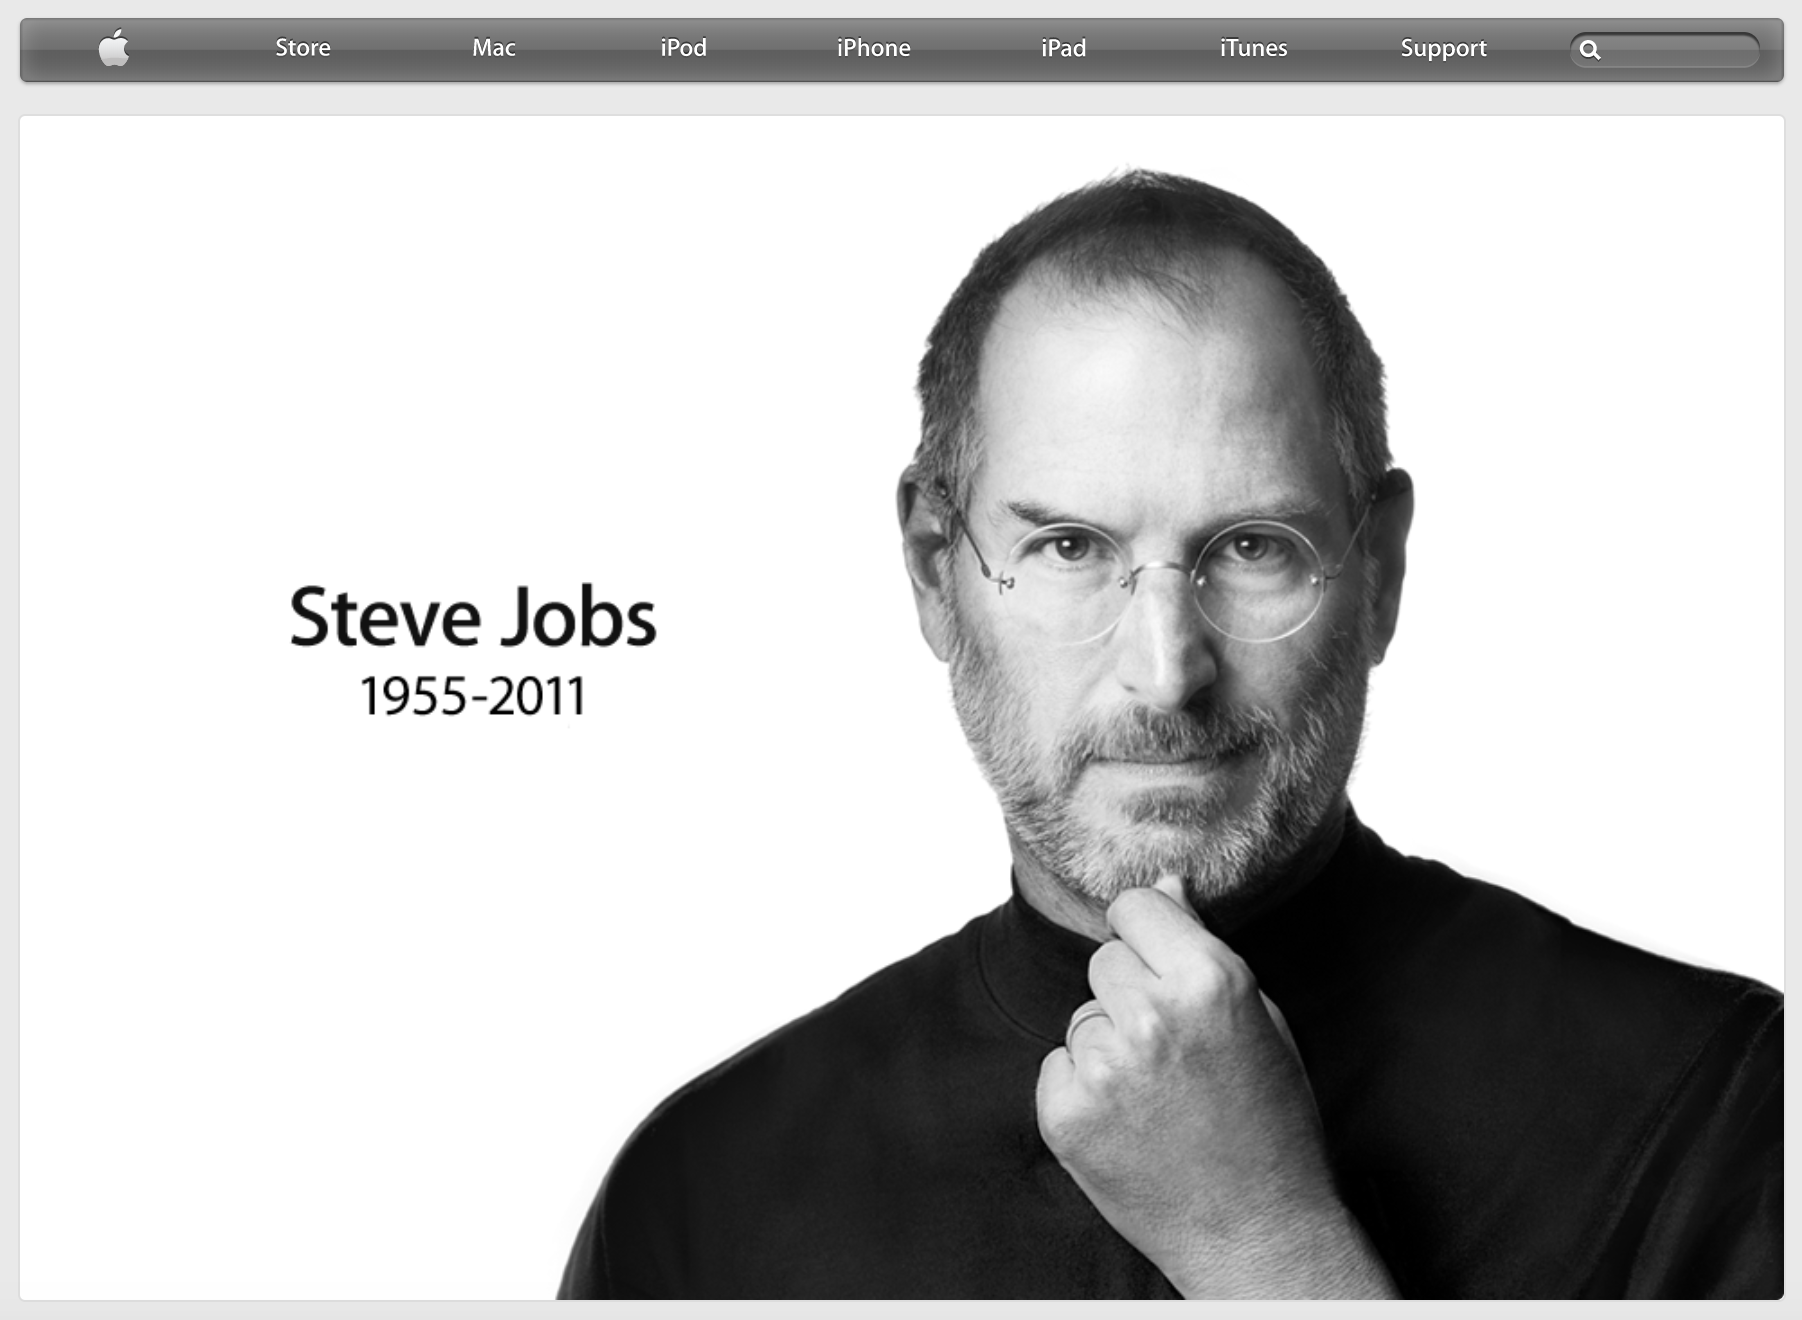 Homepage after passing of Steve Jobs (2011)